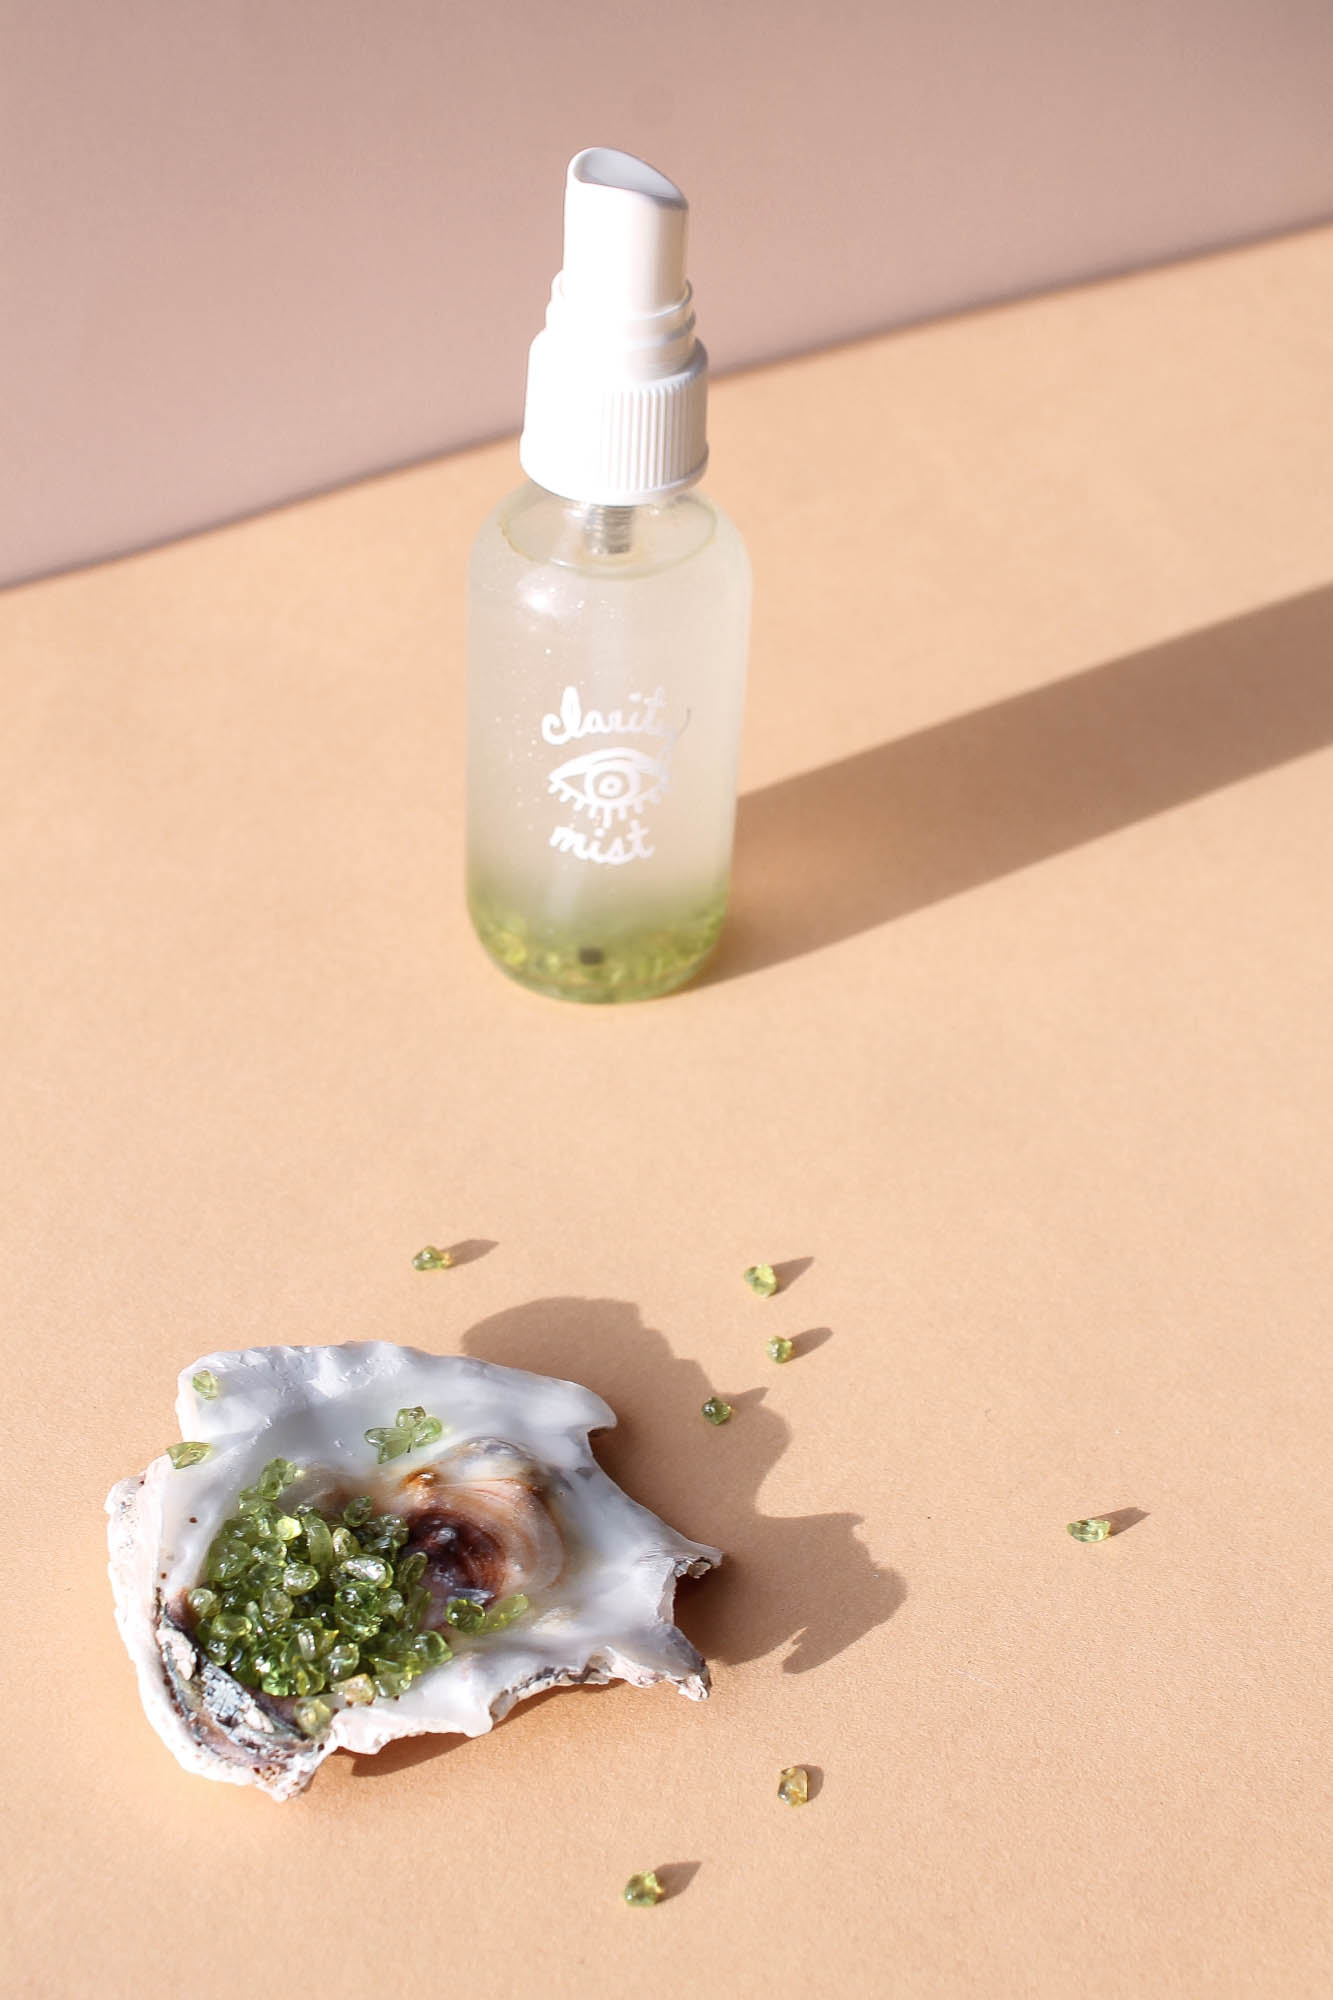 DIY Mood + Body Mist Infused with Crystals || An uplifting + healing DIY body spray that will have you thinking more clearly and calmly. Infused with peridot that cleanses and releases negative energy. || creamandhoney.ca